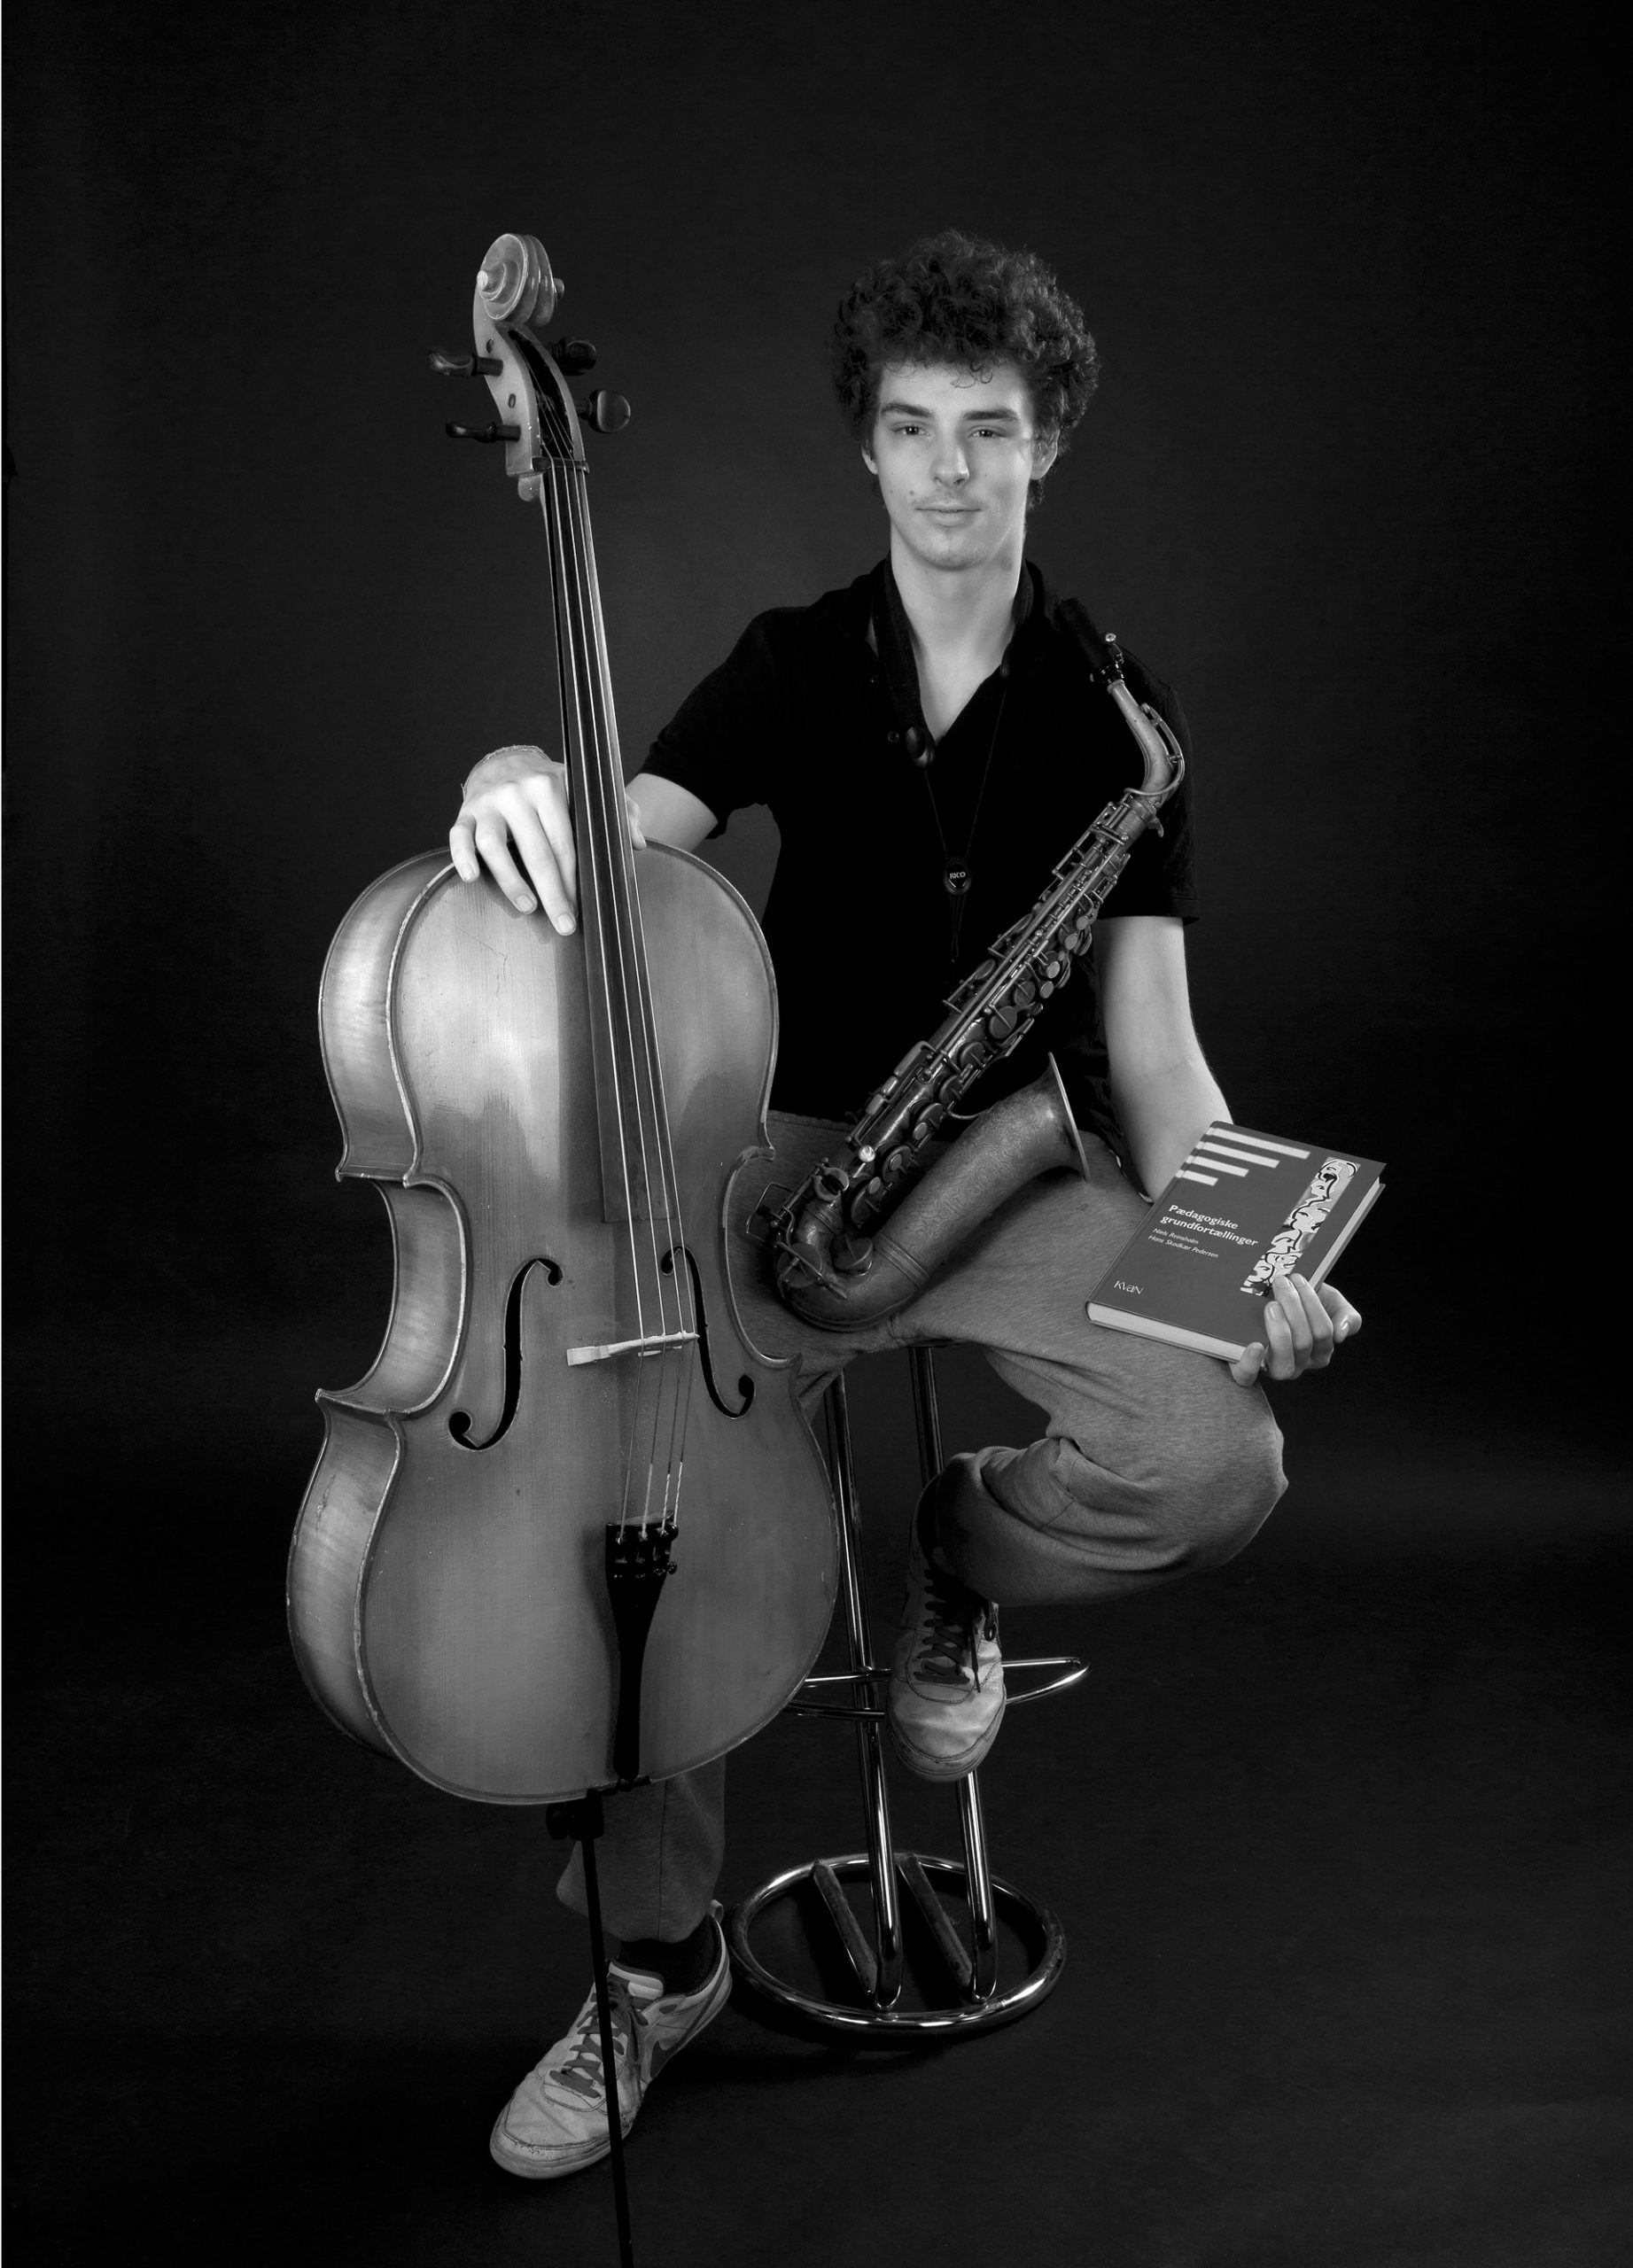 Young man with a cello and a saxophone.